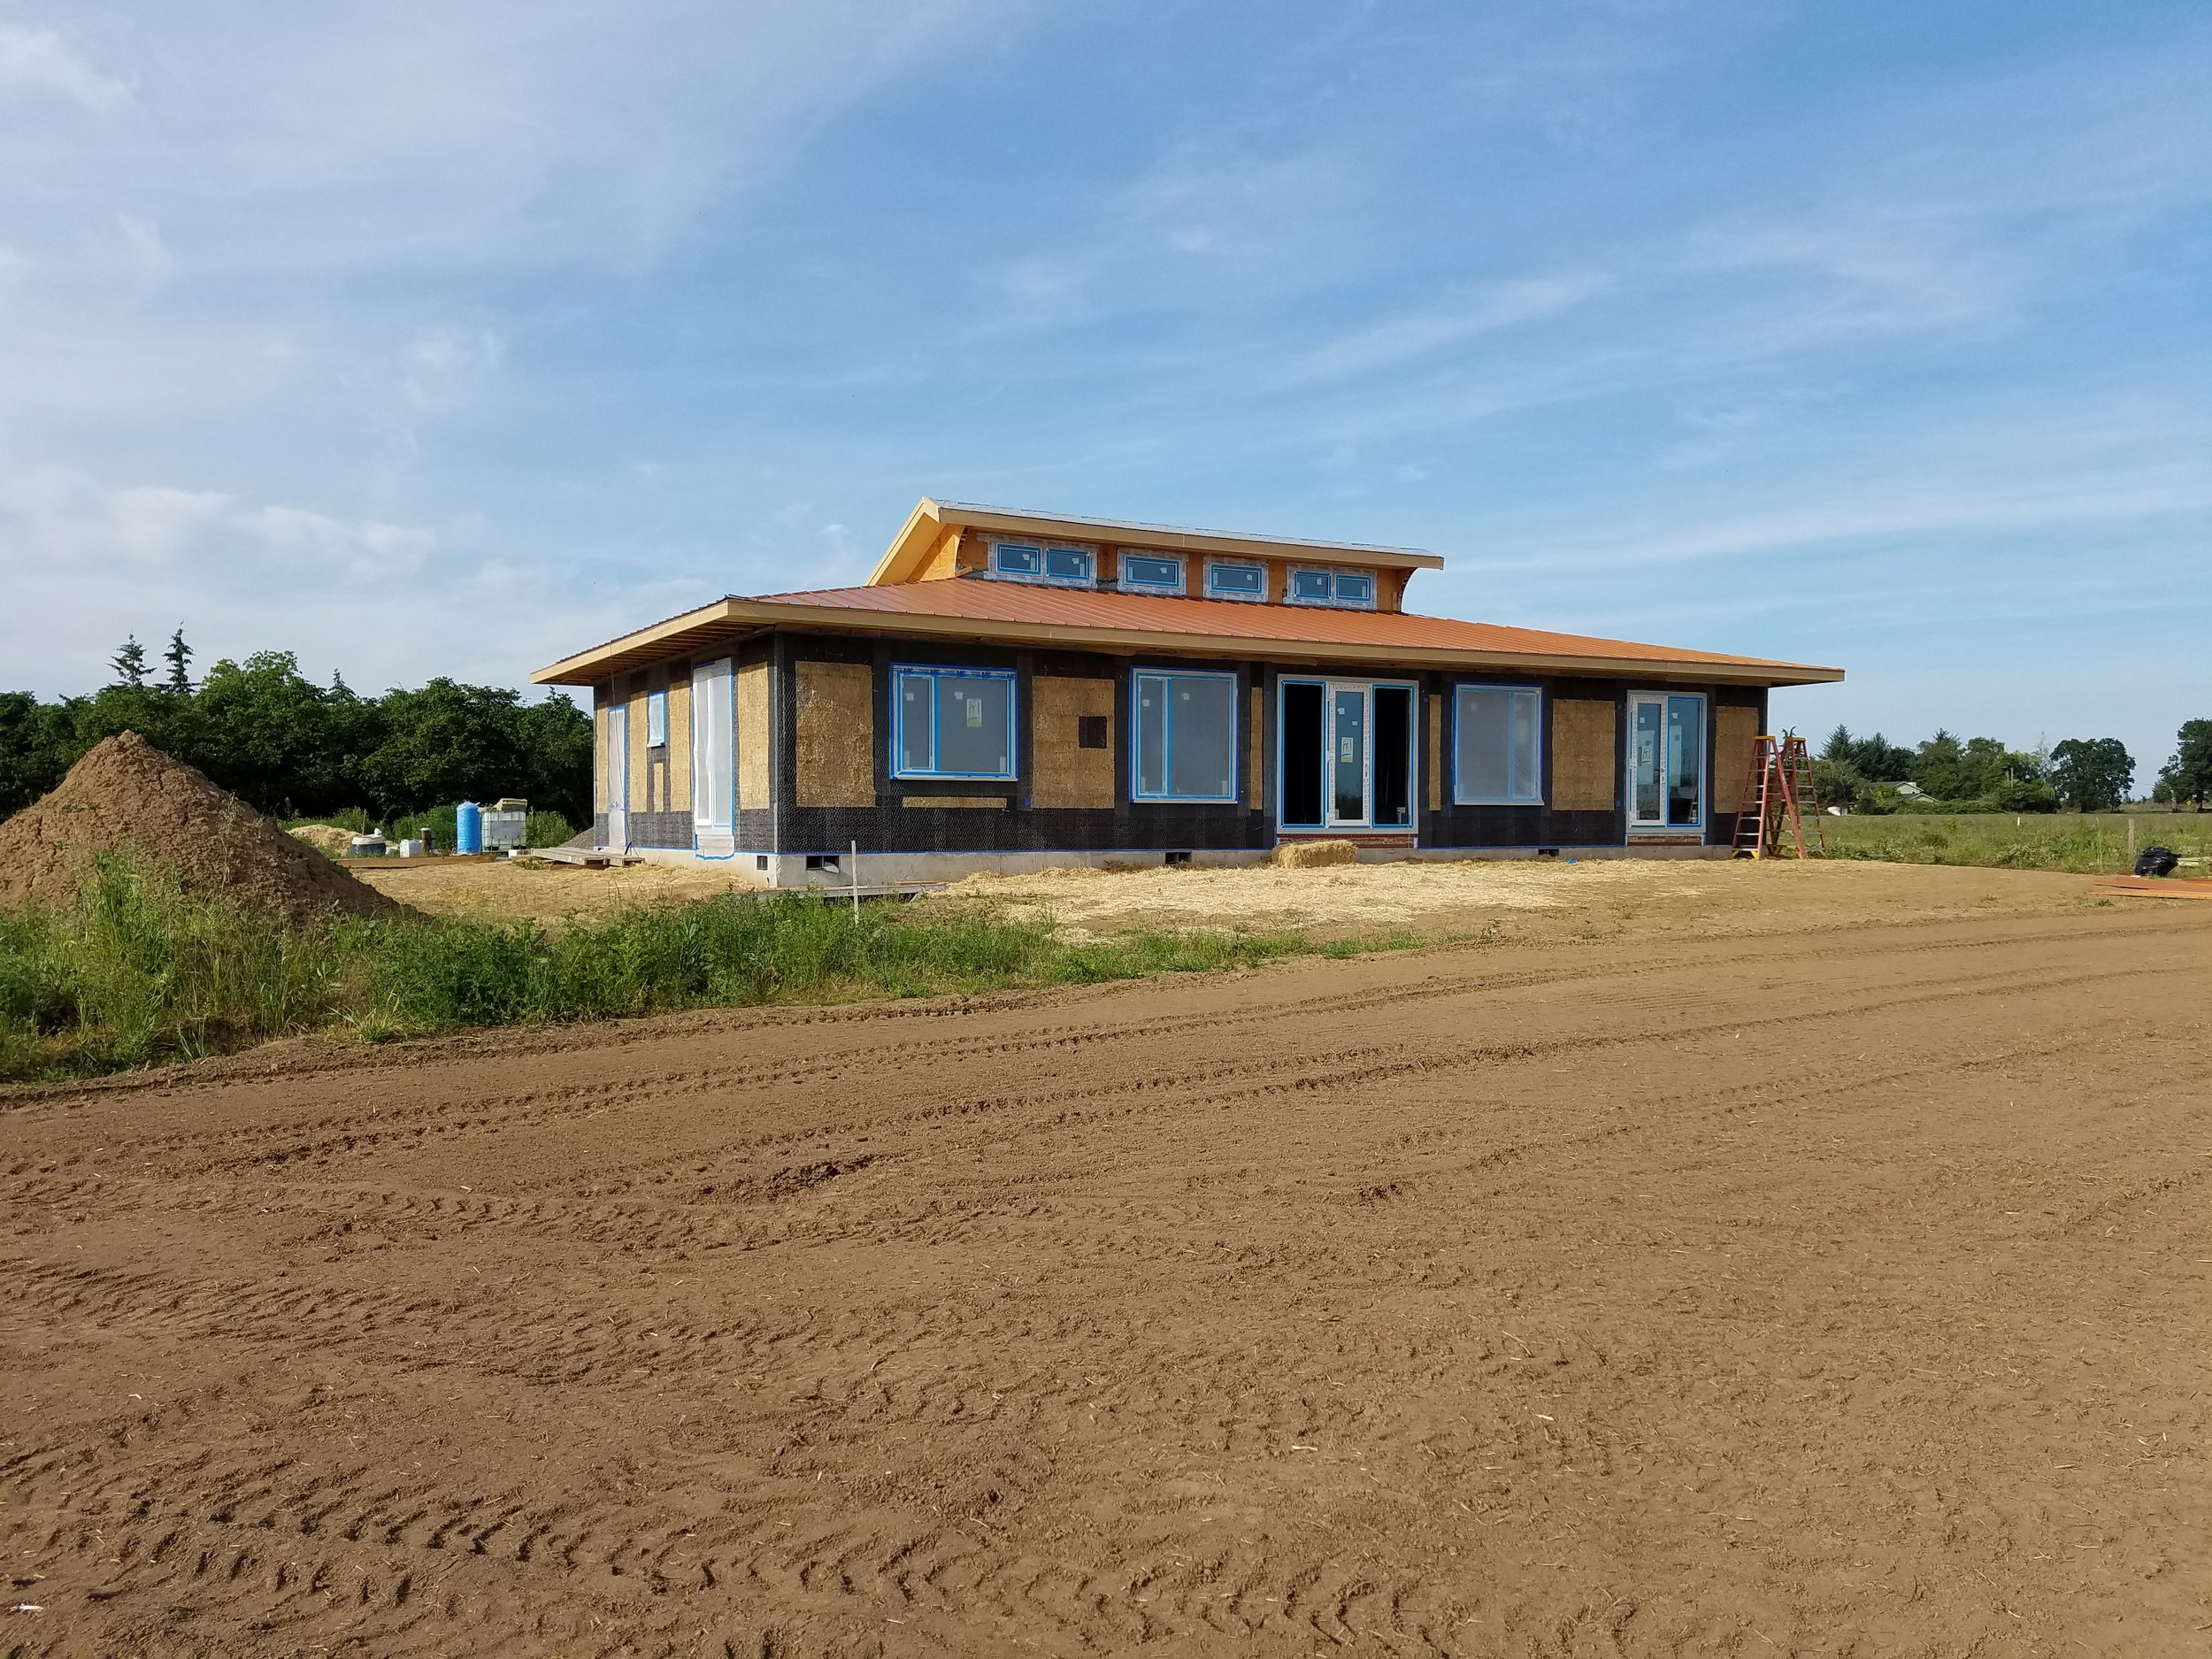 Passive solar straw bale home uses straw bale shear wall and interior partition shear walls.  Lime exterior and interior plasters.